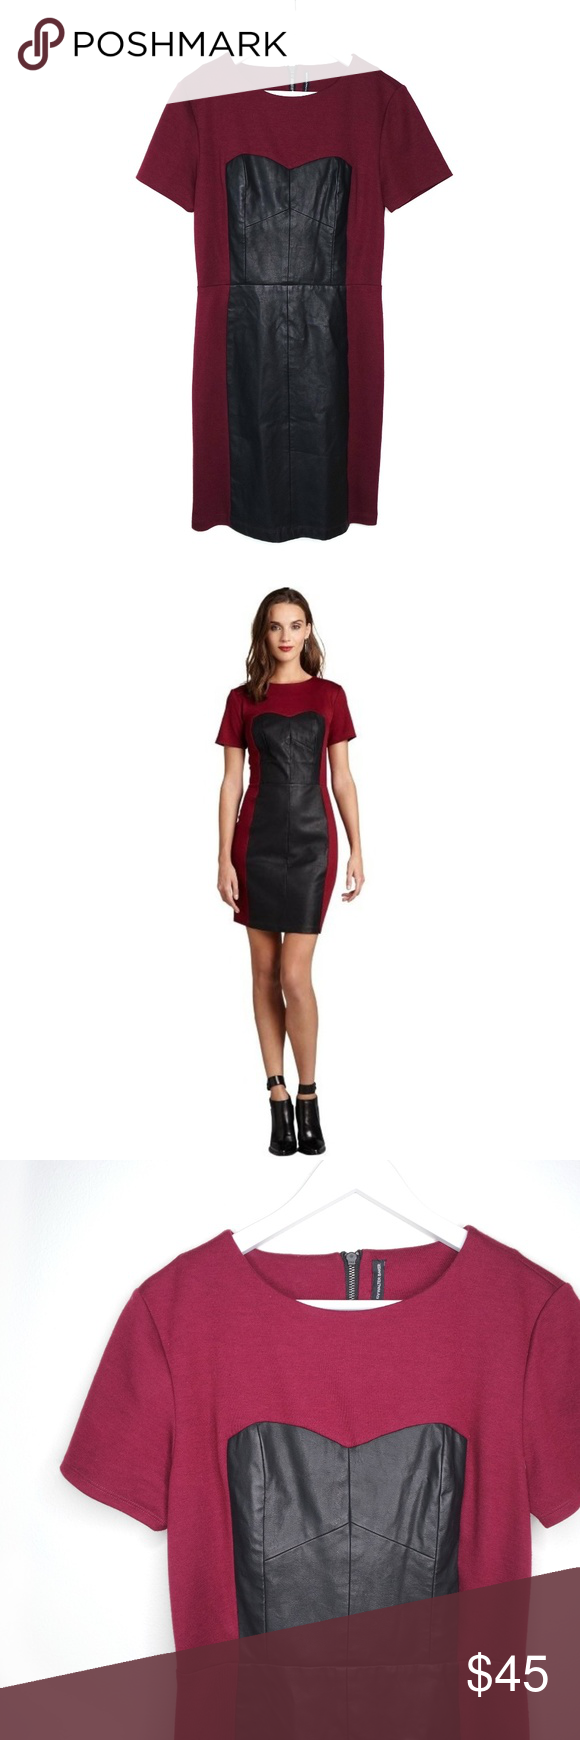 Walter Baker burgundy & faux leather Matilda dress